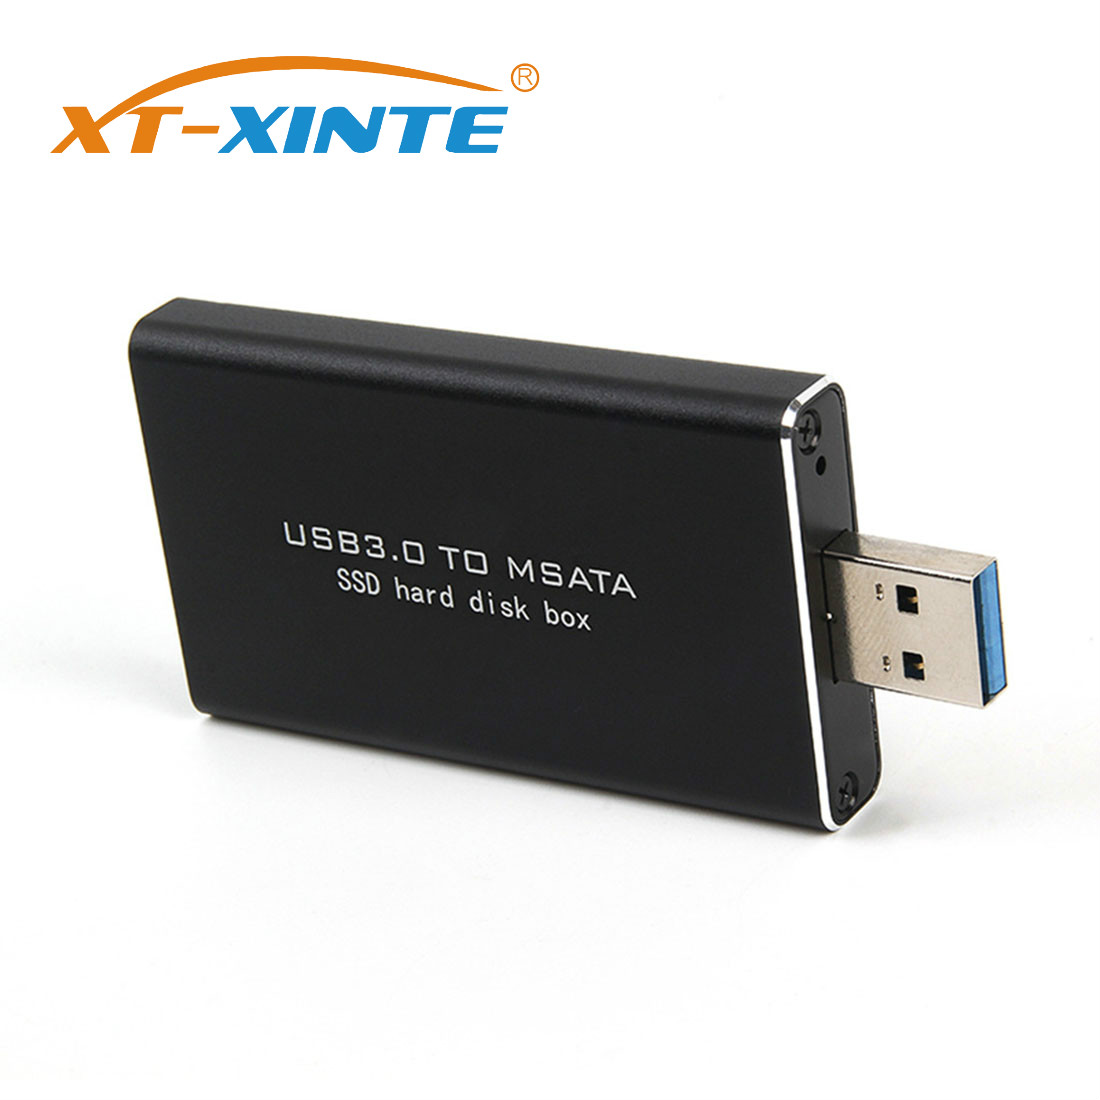 XT-XINTE 5Gbps USB 3.0 to mSATA <font><b>SSD</b></font> Enclosure USB3.0 to mini-SATA Hard Disk adapter <font><b>M2</b></font> <font><b>SSD</b></font> External HDD Mobile <font><b>Box</b></font> image